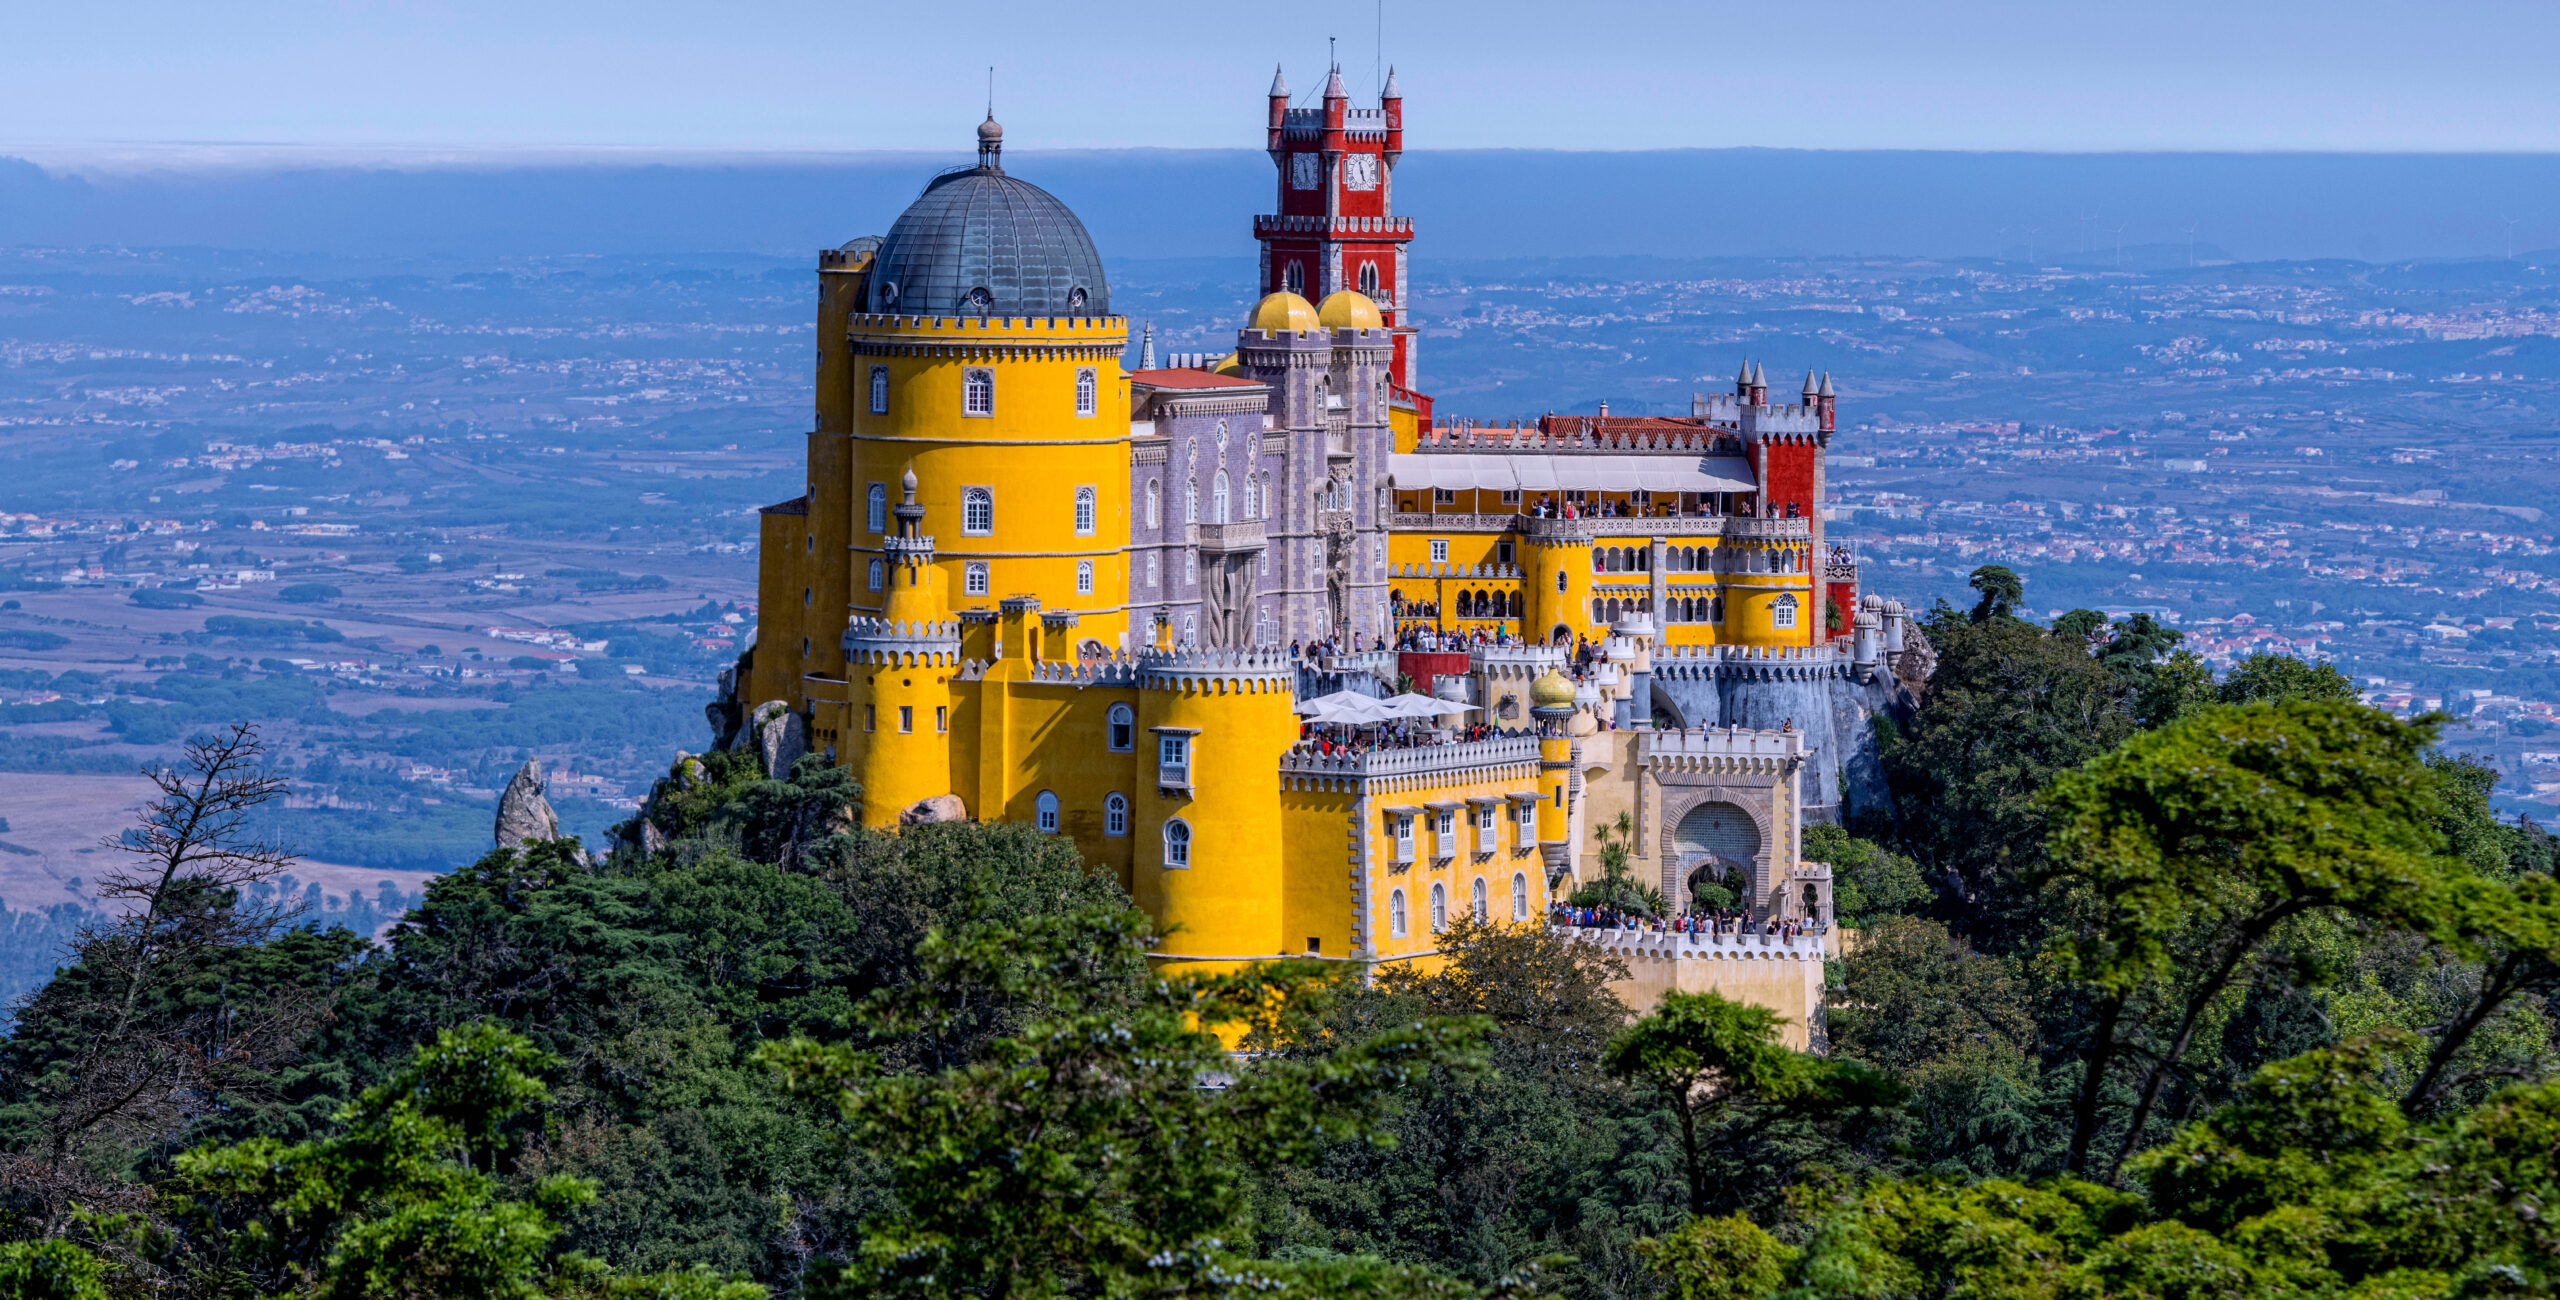 Panoramic view of the Pena Palace. Sintra, Portugal. [Shutterstock image]